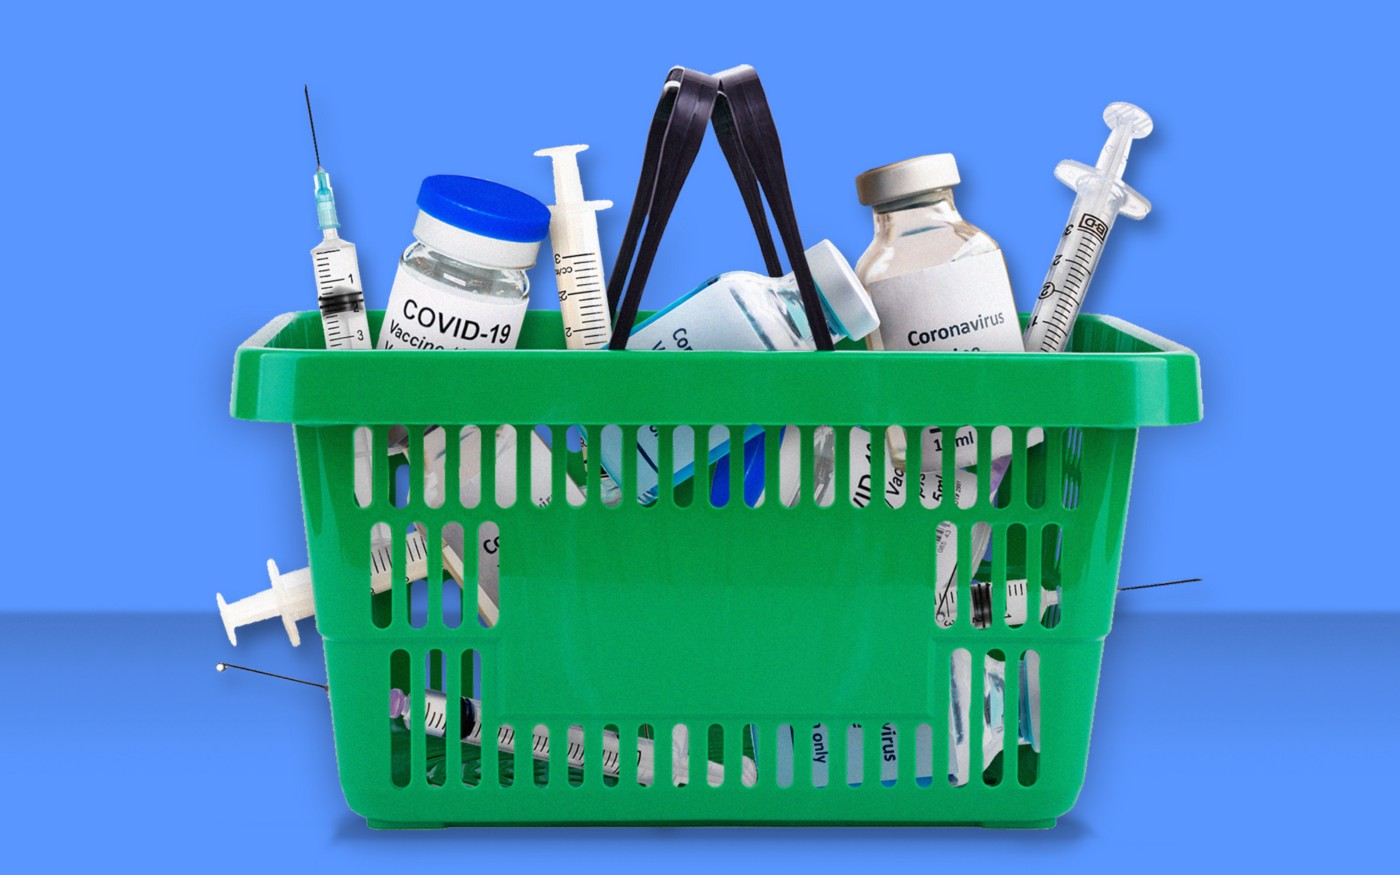 A photo illustration featuring a shopping basket filled with vials of Covid-19 vaccines and shots.